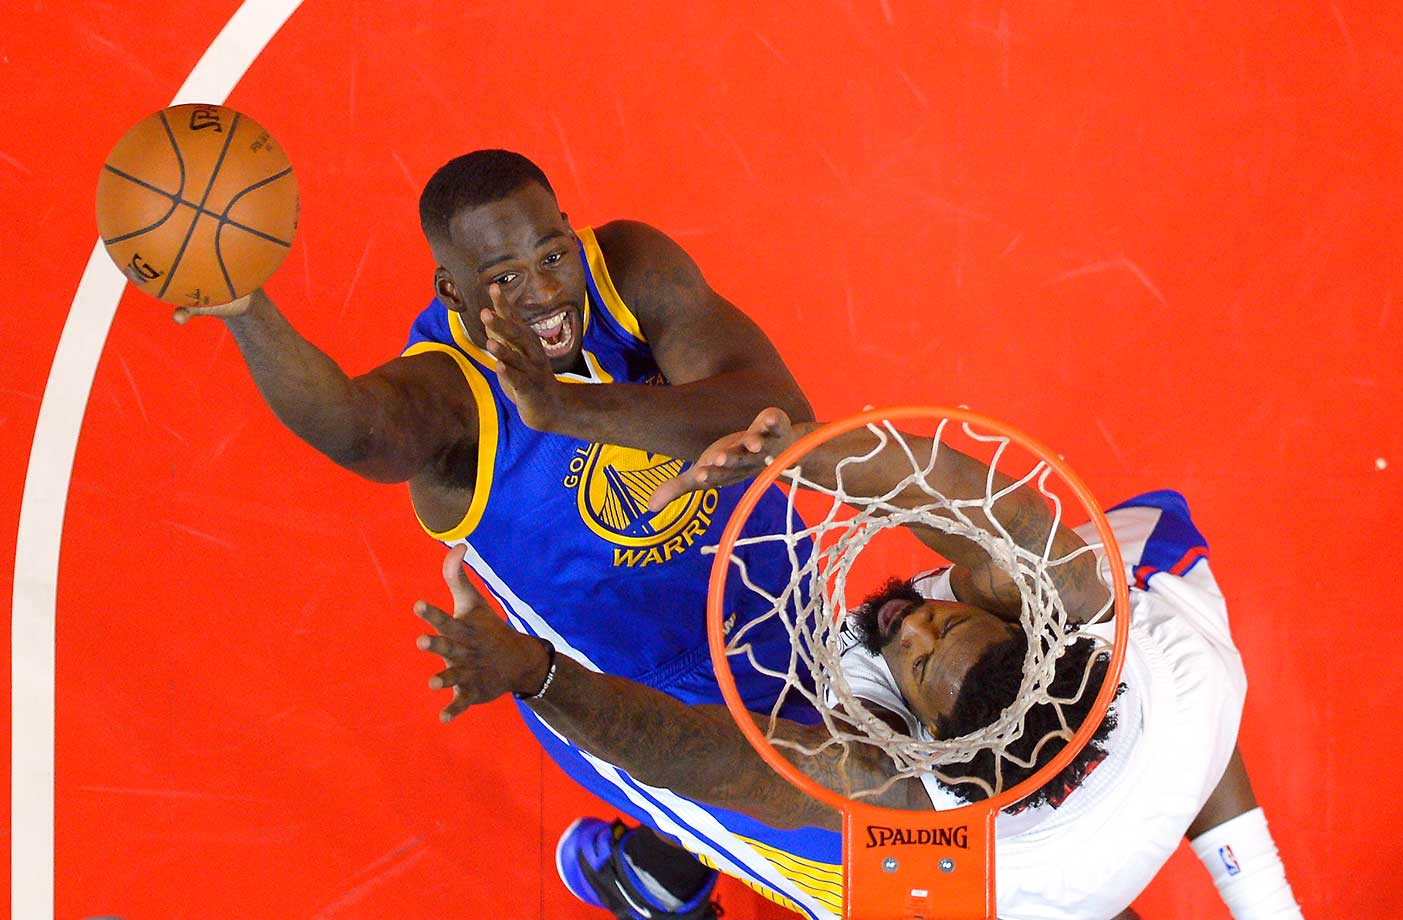 Draymond Green shoots over DeAndre Jordan as the Warriors erased a 23-point deficit to defeat the Clippers for the second time in the 2015-16 season.